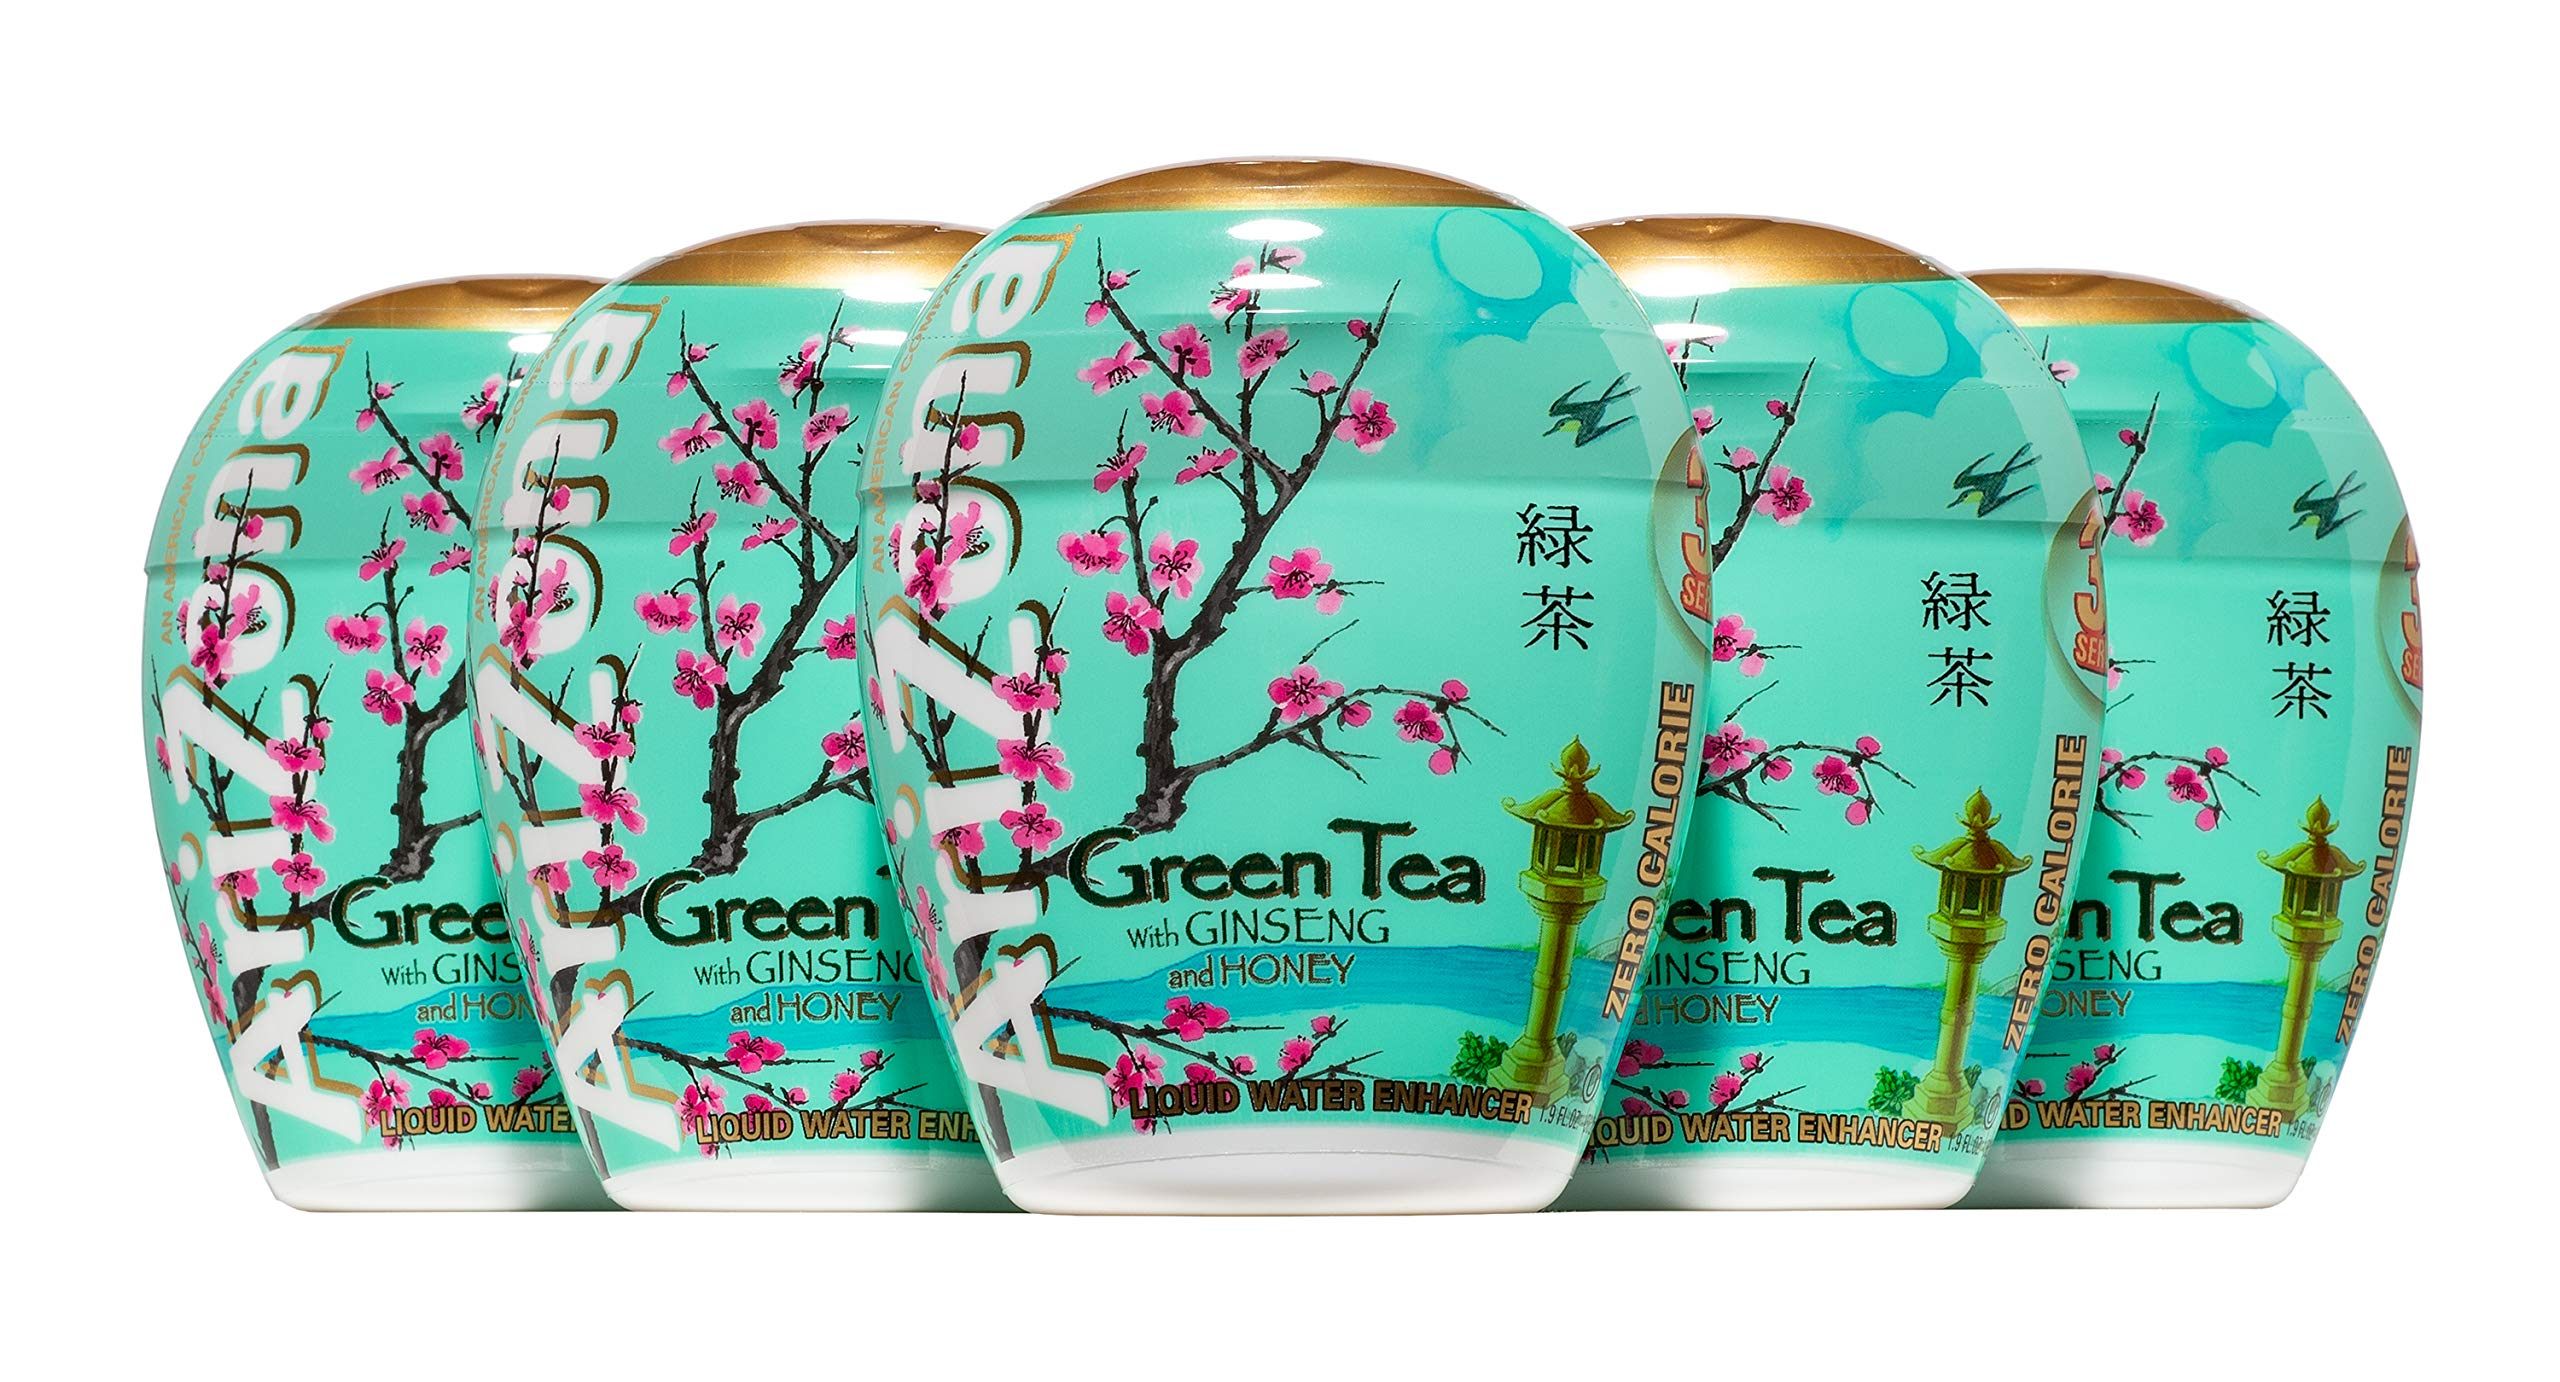 AriZona Green Tea with Honey and Ginseng Liquid Water Enhancer LWE (Pack of 5), Low Calorie Single Serving, Liquid Drink Mix, Just Add Water for Deliciously Refreshing Iced Tea Drink